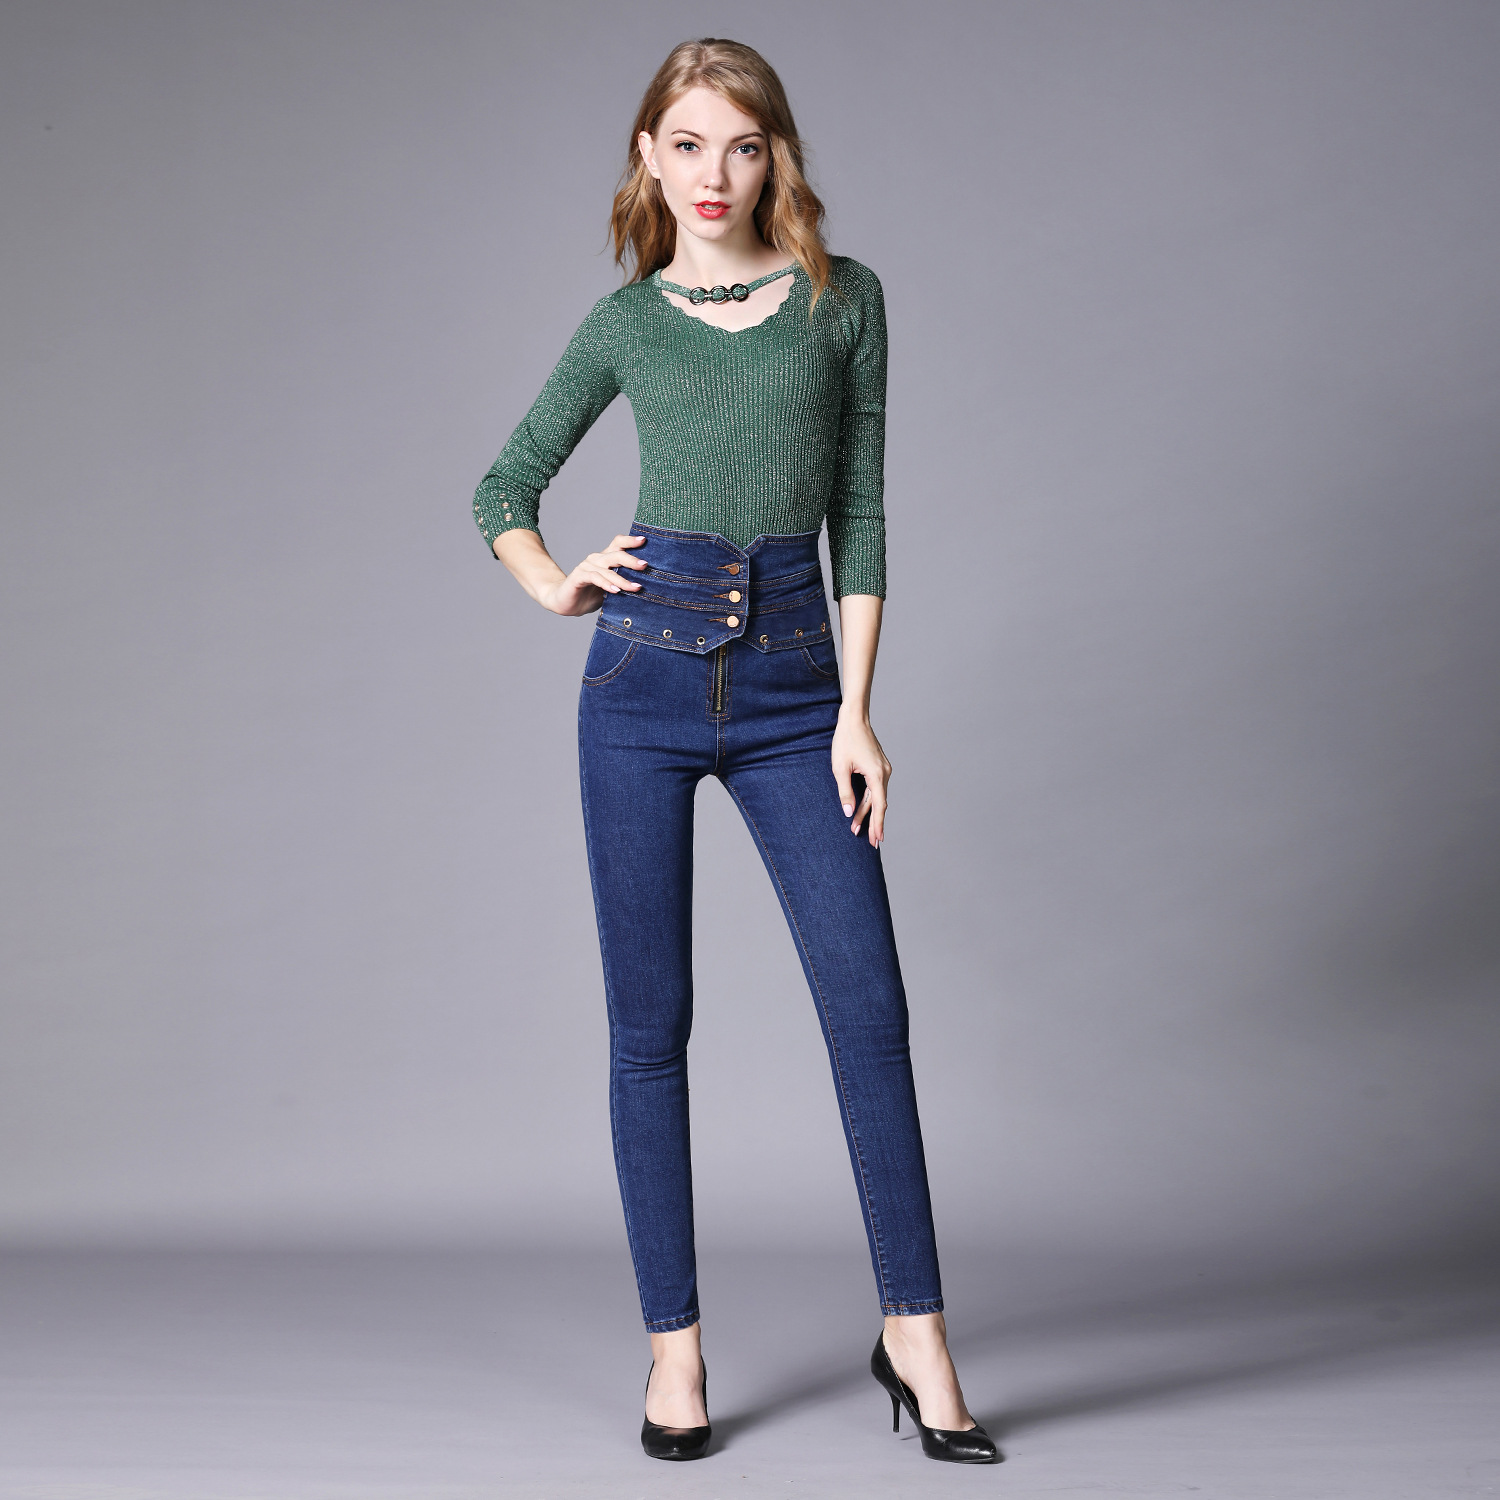 2019 Autumn Europe And America Large Size Elasticity High Waist Jeans Women's Black And White With Pattern Skinny Pants Slim Fit